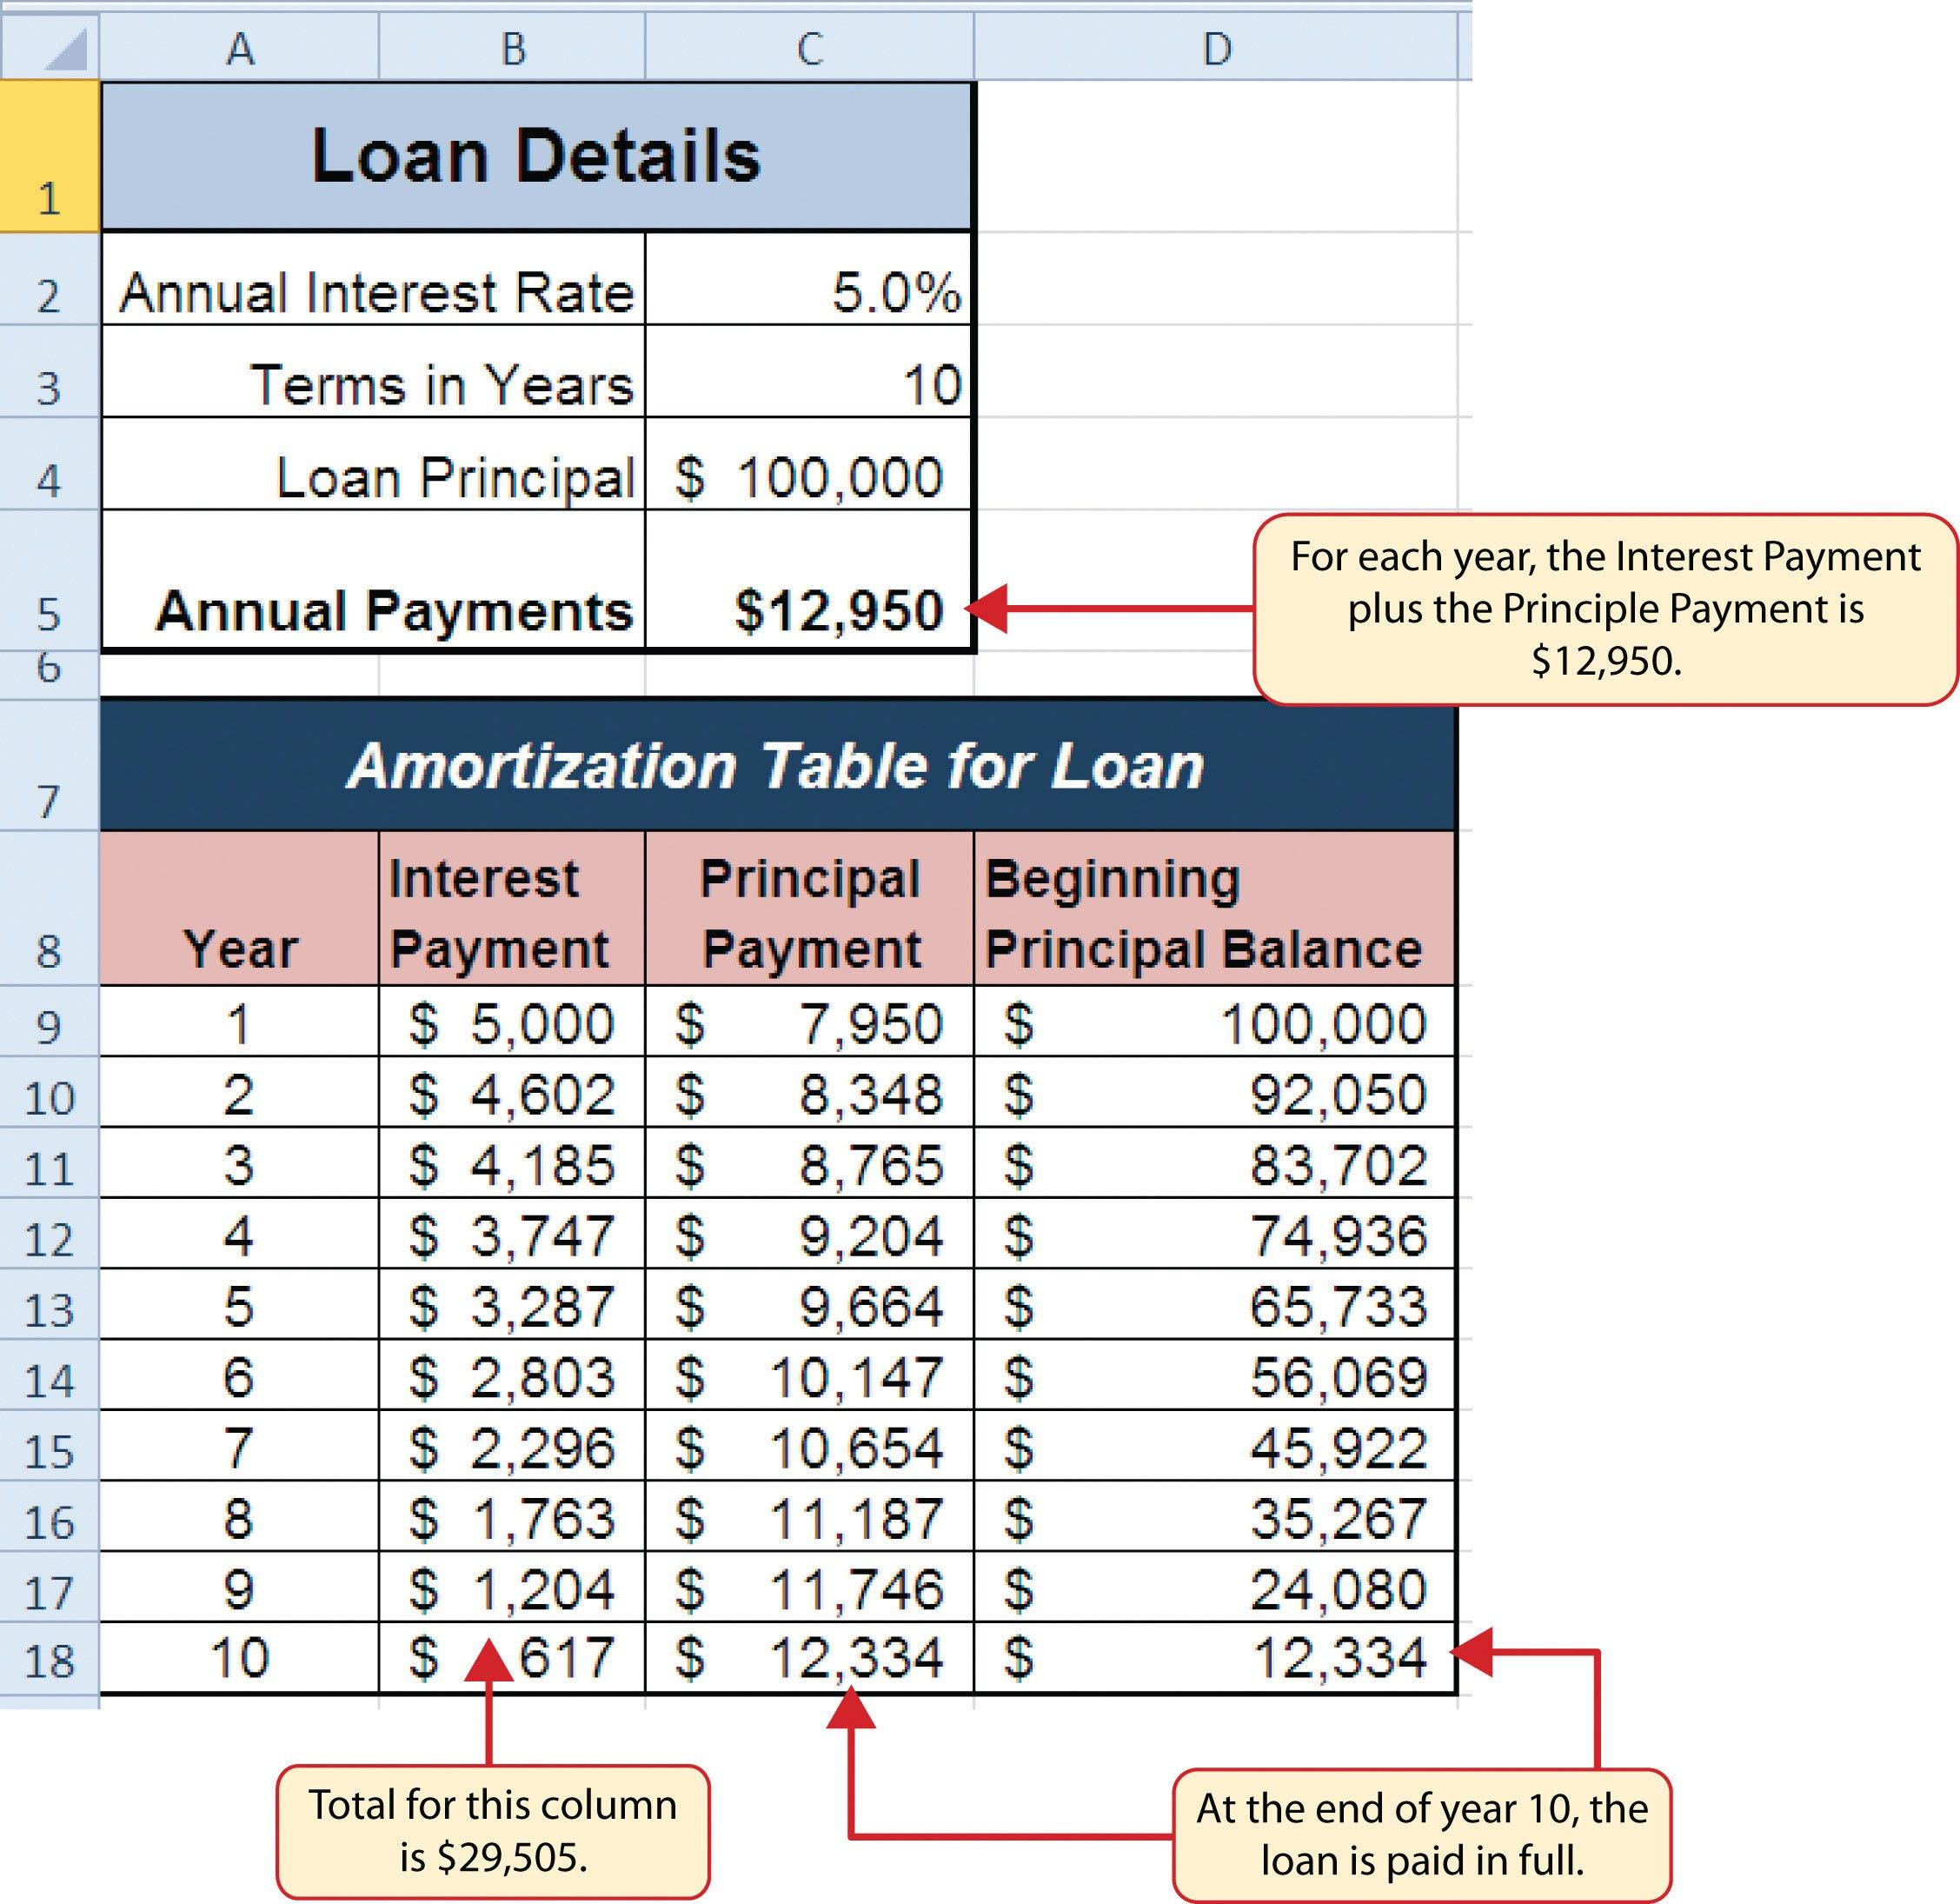 New Loan Payment Schedule Xlstemplate Xlssample Xls Xlsdata